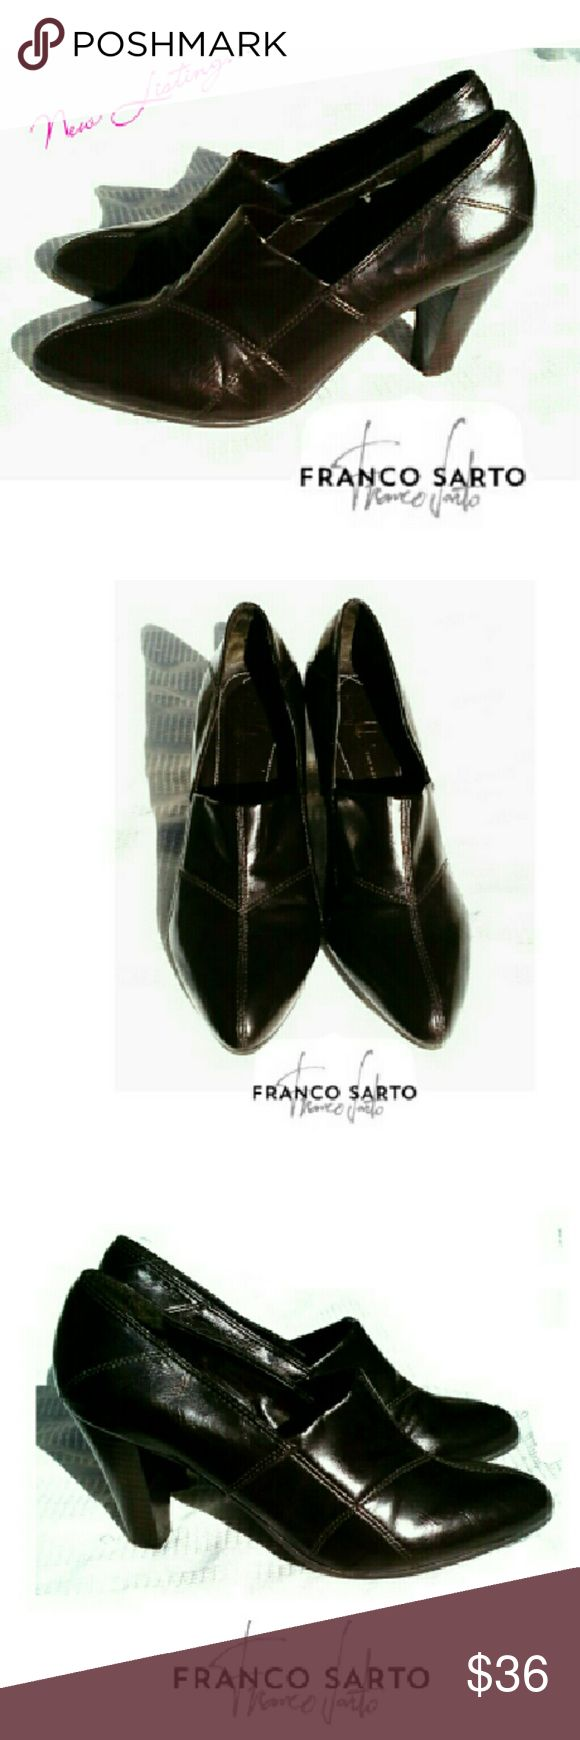 """FRANCO SARTO DRK BROWN HEEL SHOES FRANCO SARTO DARK BROWN HEEL SHOES Pre-loved / See Pics *   Dark Brown Manmade Material *   3 1/2"""" Heel *   One Inside has Peeling Lining (Pic #4) *   Very Comfortable Shoe Pls See All Pics. Price Reflects Cond. Franco Sarto Shoes Heels"""